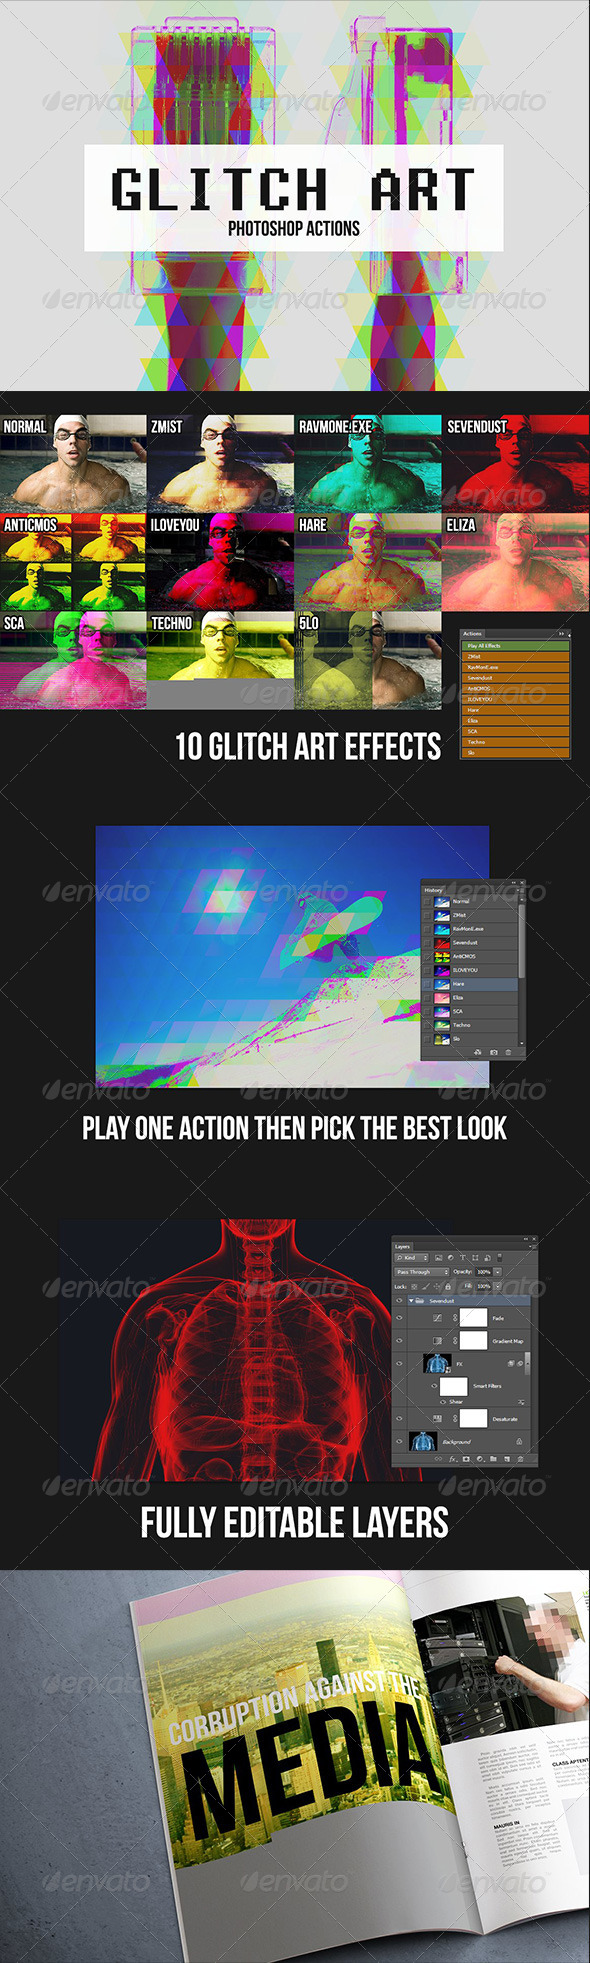 GraphicRiver 10 Glitch Art Effects 7719832